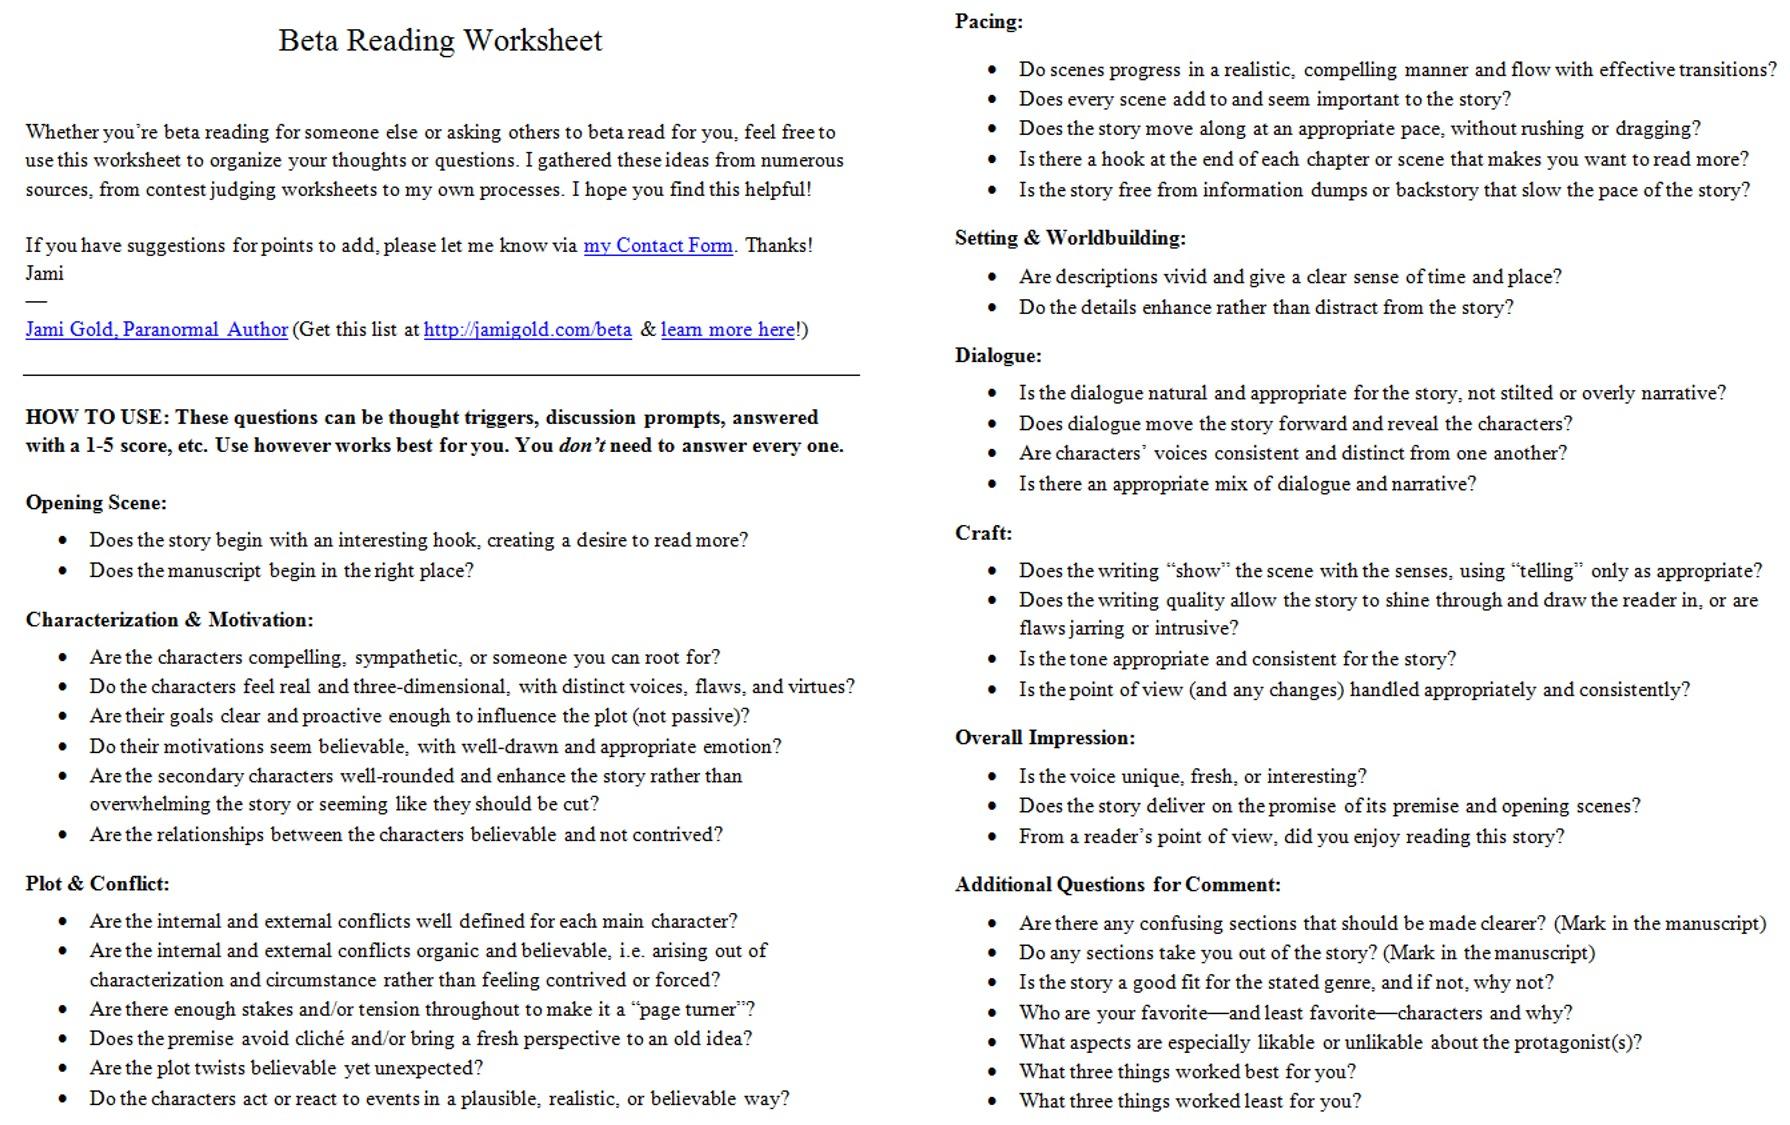 Aldiablosus  Inspiring Worksheets For Writers  Jami Gold Paranormal Author With Marvelous Screen Shot Of The Twopage Beta Reading Worksheet With Beauteous Adding Fractions Worksheet With Answers Also Adding Dissimilar Fractions Worksheets In Addition Plural Es Worksheets And Letter C Writing Worksheets As Well As Tax Effect Accounting Worksheet Additionally Picture Math Addition Worksheets From Jamigoldcom With Aldiablosus  Marvelous Worksheets For Writers  Jami Gold Paranormal Author With Beauteous Screen Shot Of The Twopage Beta Reading Worksheet And Inspiring Adding Fractions Worksheet With Answers Also Adding Dissimilar Fractions Worksheets In Addition Plural Es Worksheets From Jamigoldcom